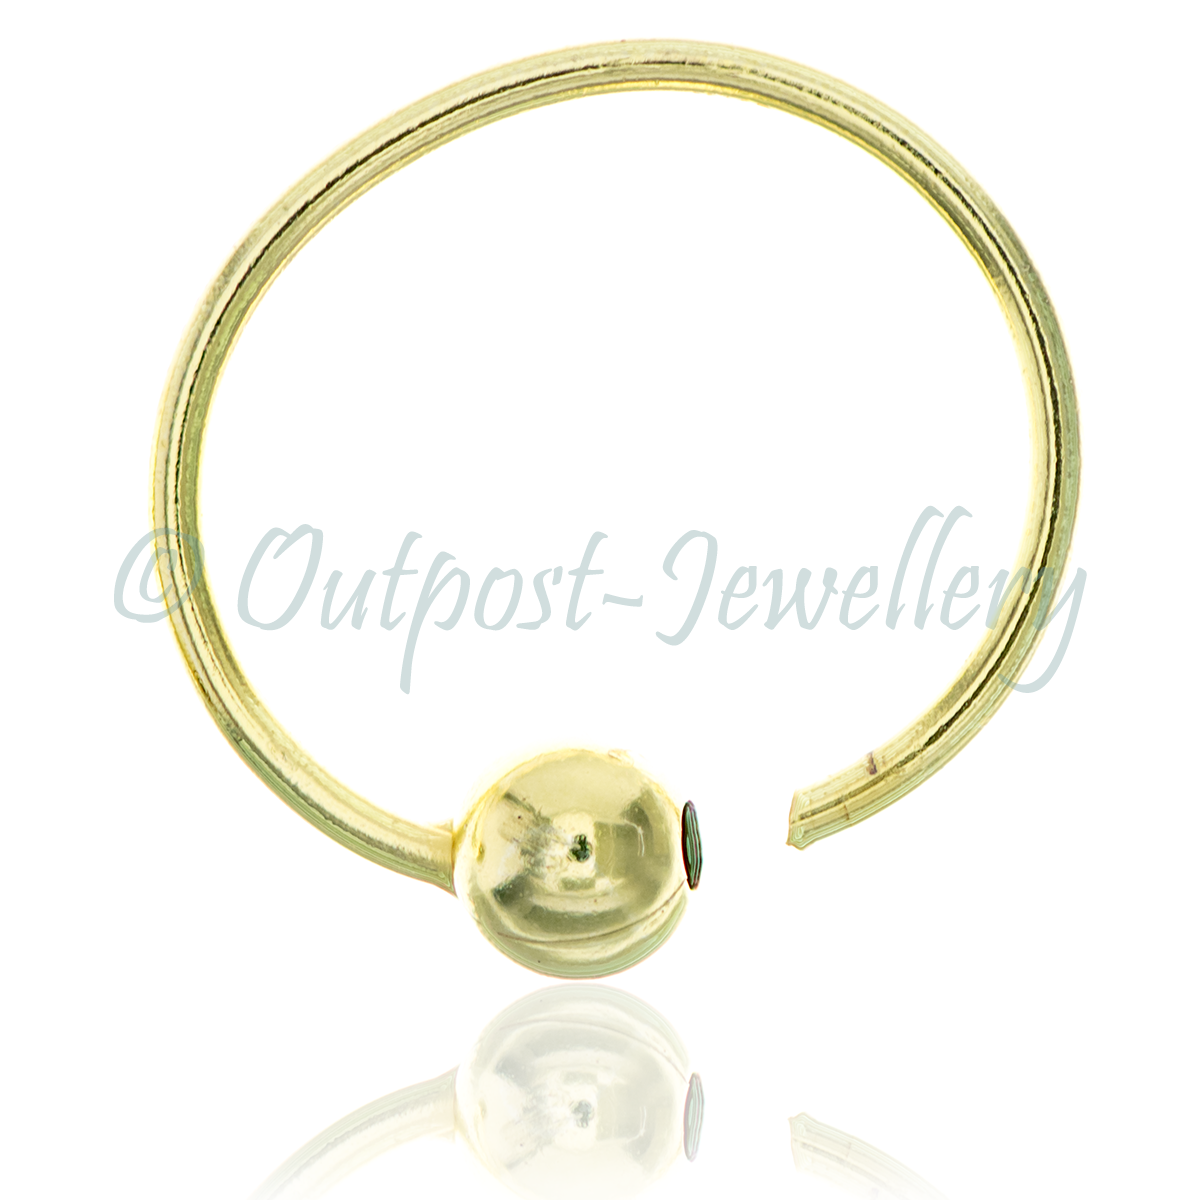 Gold Plated Sterling Silver Nose Ring Split 3mm Ball  Very Small Thin For Nose